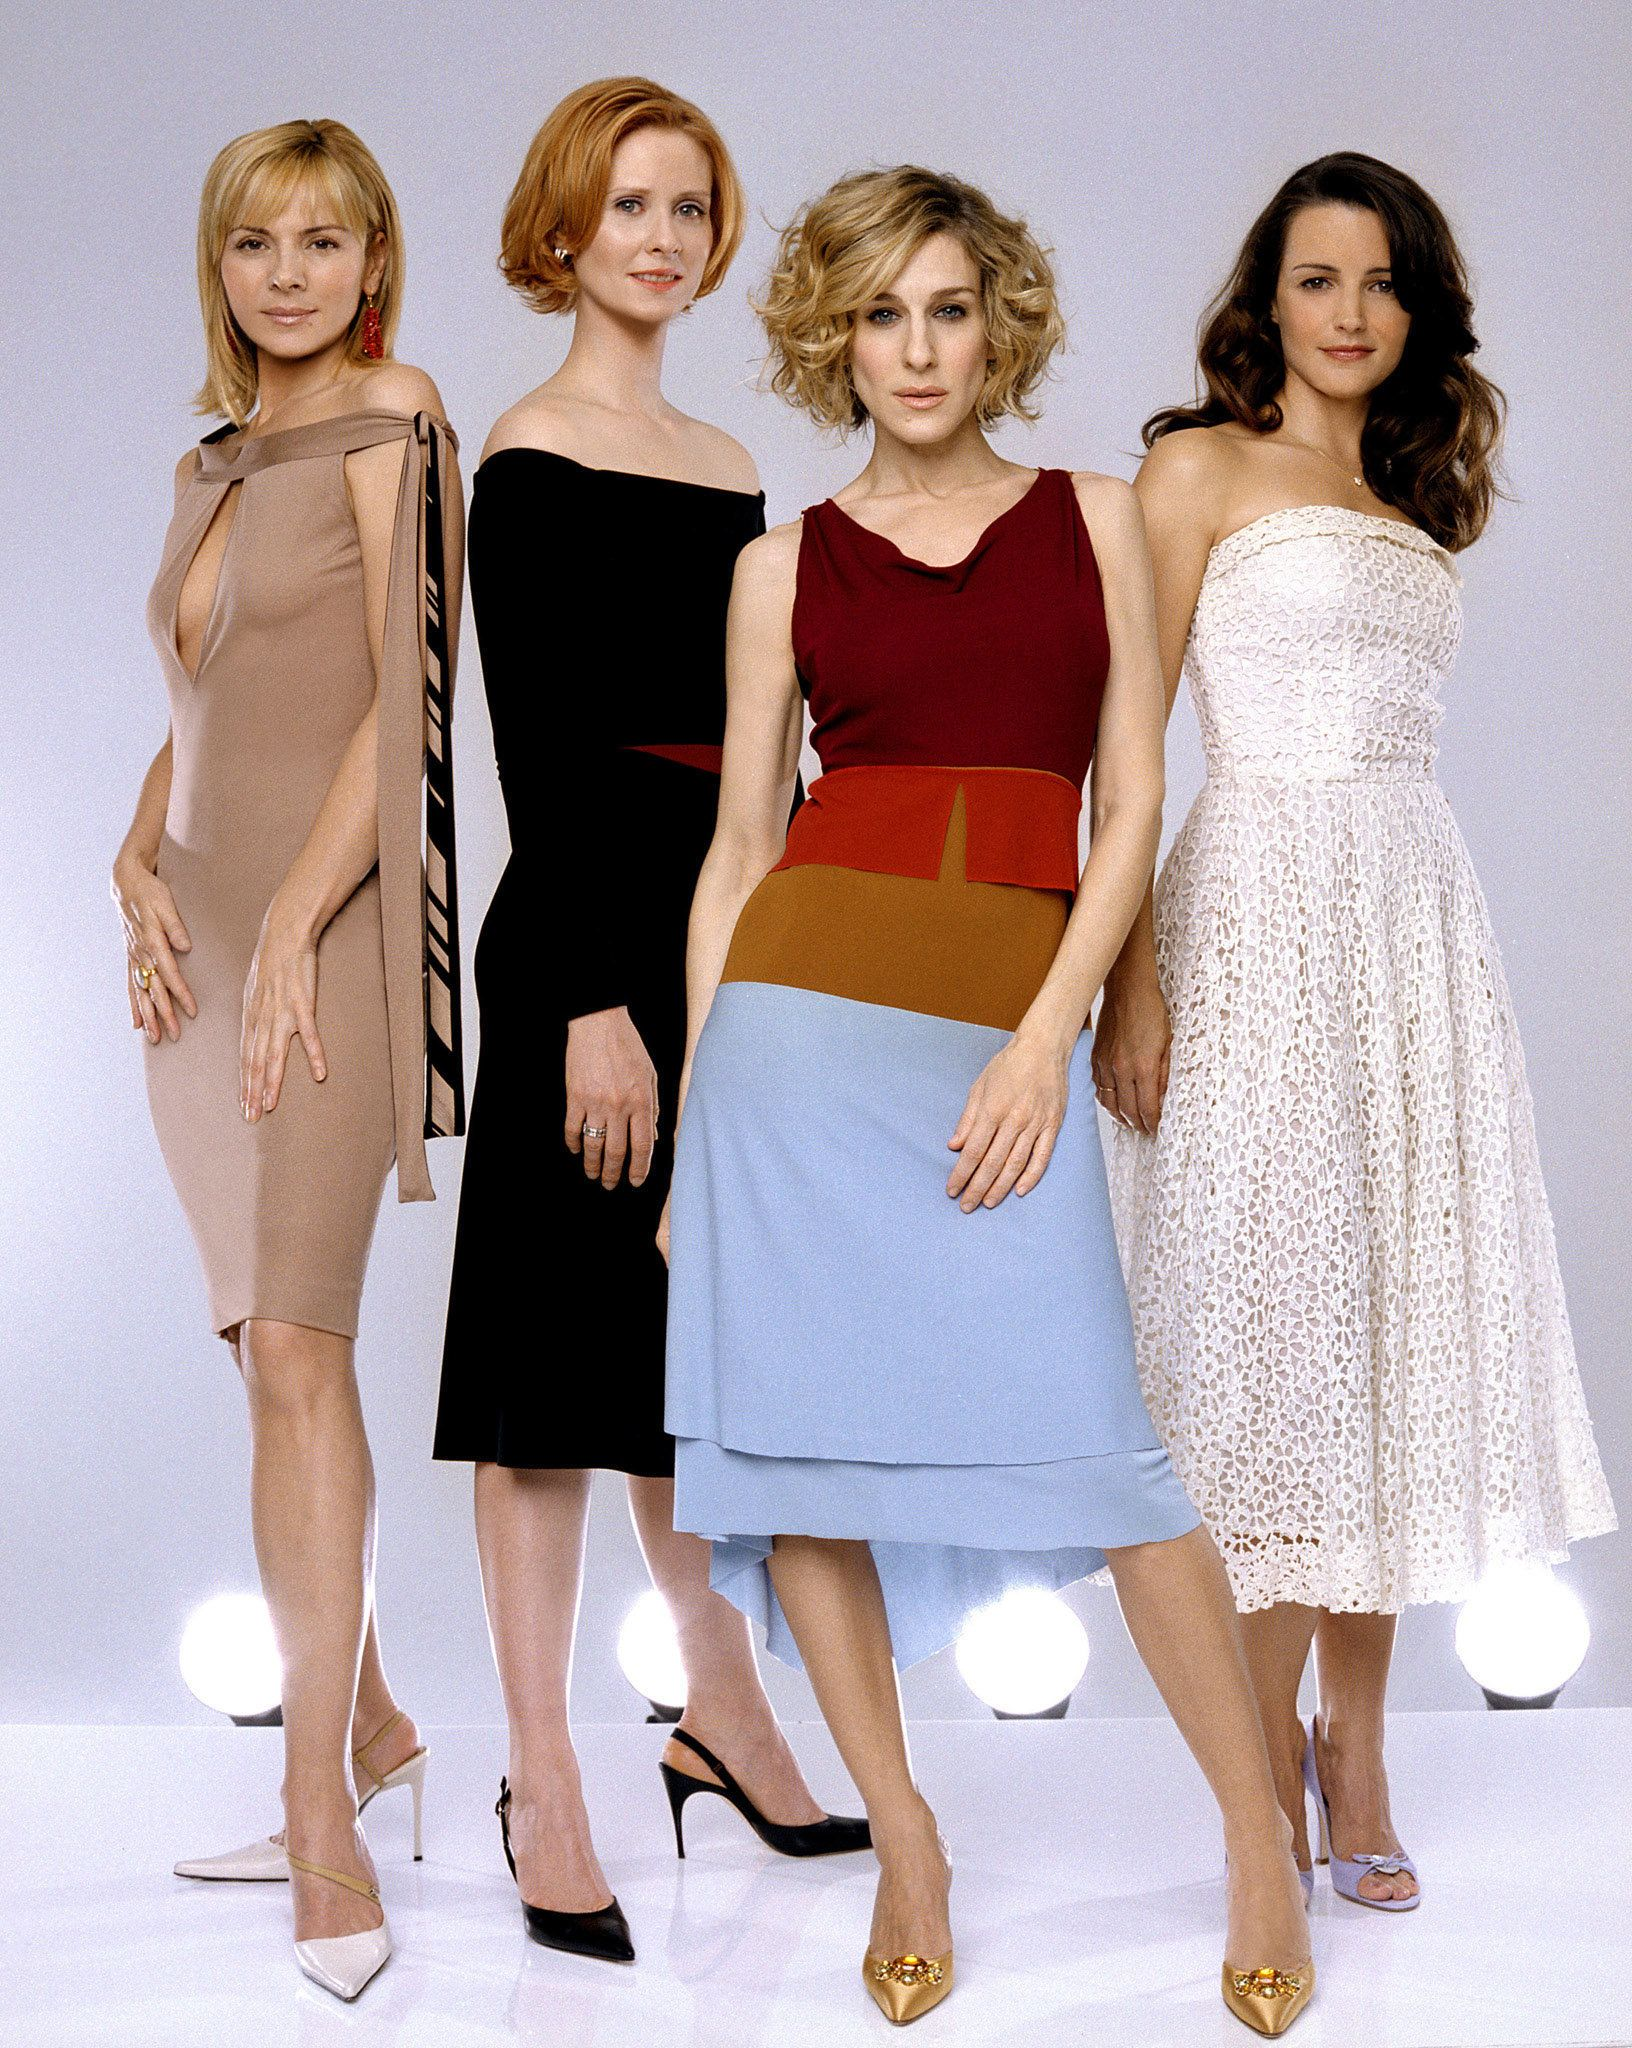 "The cast of the HBO televisions series ""Sex and the City"" (L-R)  Kim Cattrall, Cynthia Nixon, Sarah Jessica Parker and Kristin Davis pose in this undated publicity photograph. The series new season premieres July 21, 2002 in the United States. The real-life pregnancy of Sarah Jessica Parker, who stars as sex columnist Carrie Bradshaw, required an early production wrap last spring.  NO SALES"